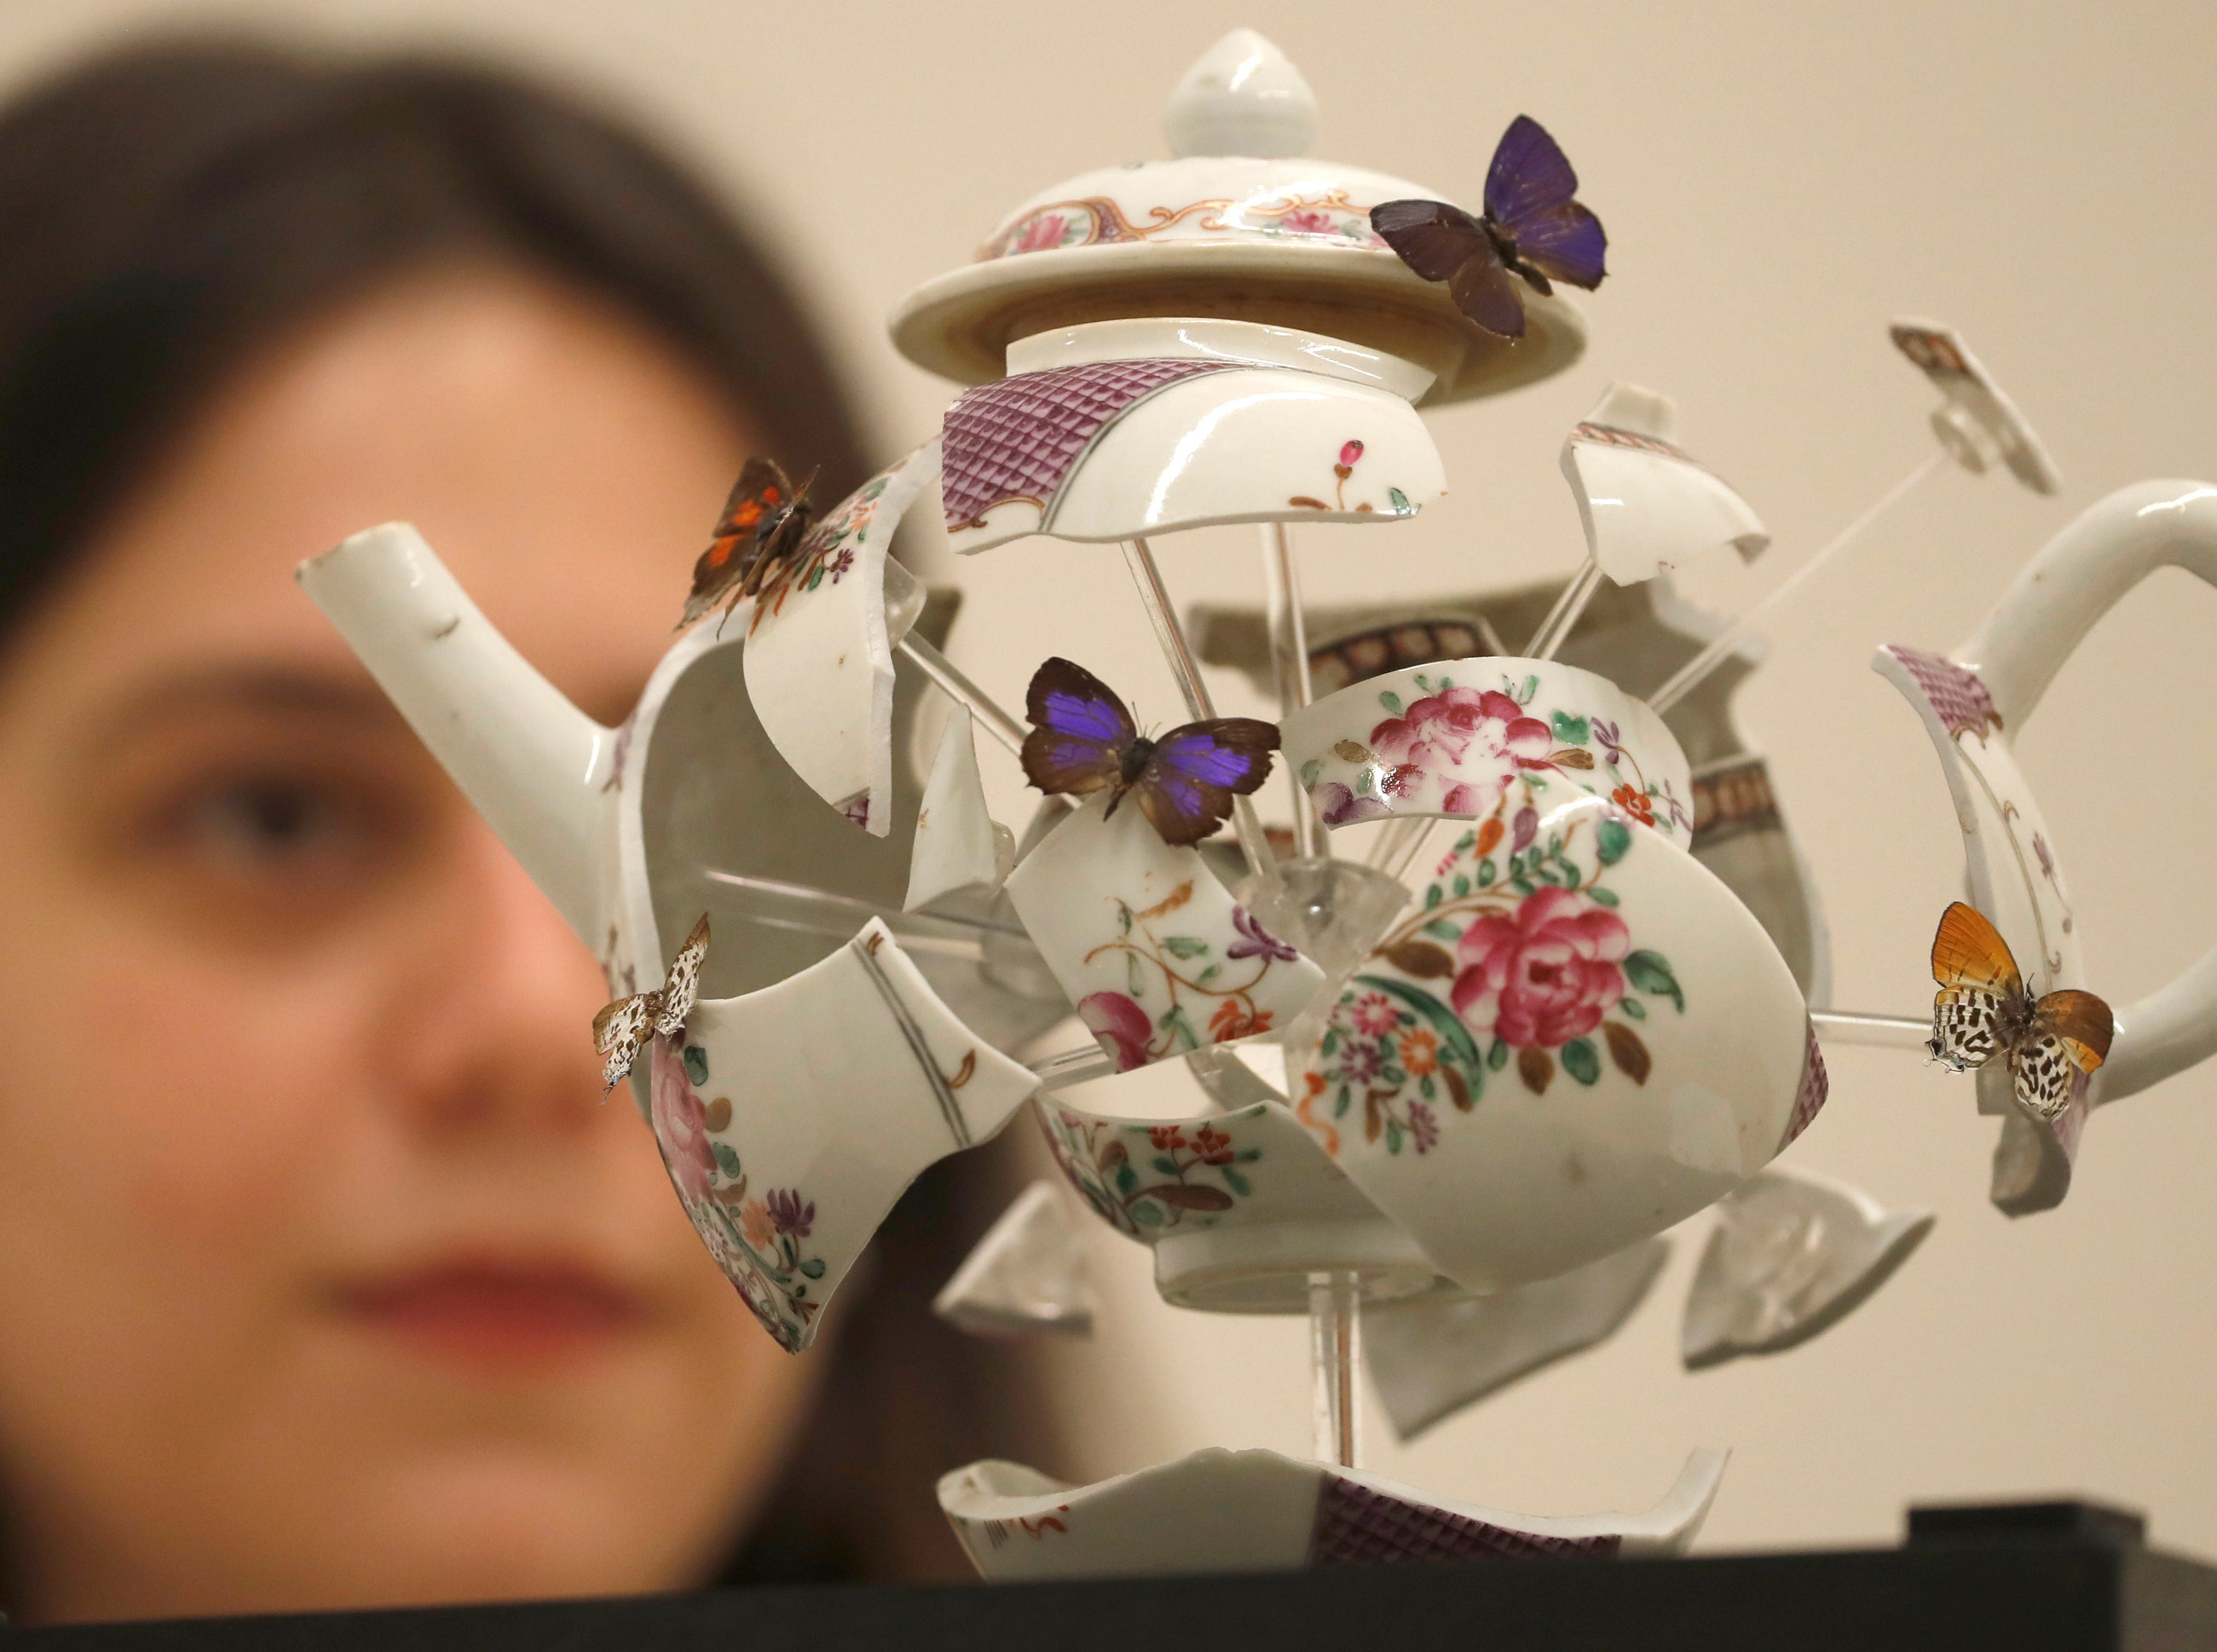 """A Christies employee checks an artwork by Bouke De Vries entitled """"Deconstructed Teapot with Butterflies"""" 2017, at Christie's auction house in London, Friday, May 17, 2019. The teapot is expected to sell for $5,100-$7,600) at auction on May 22."""